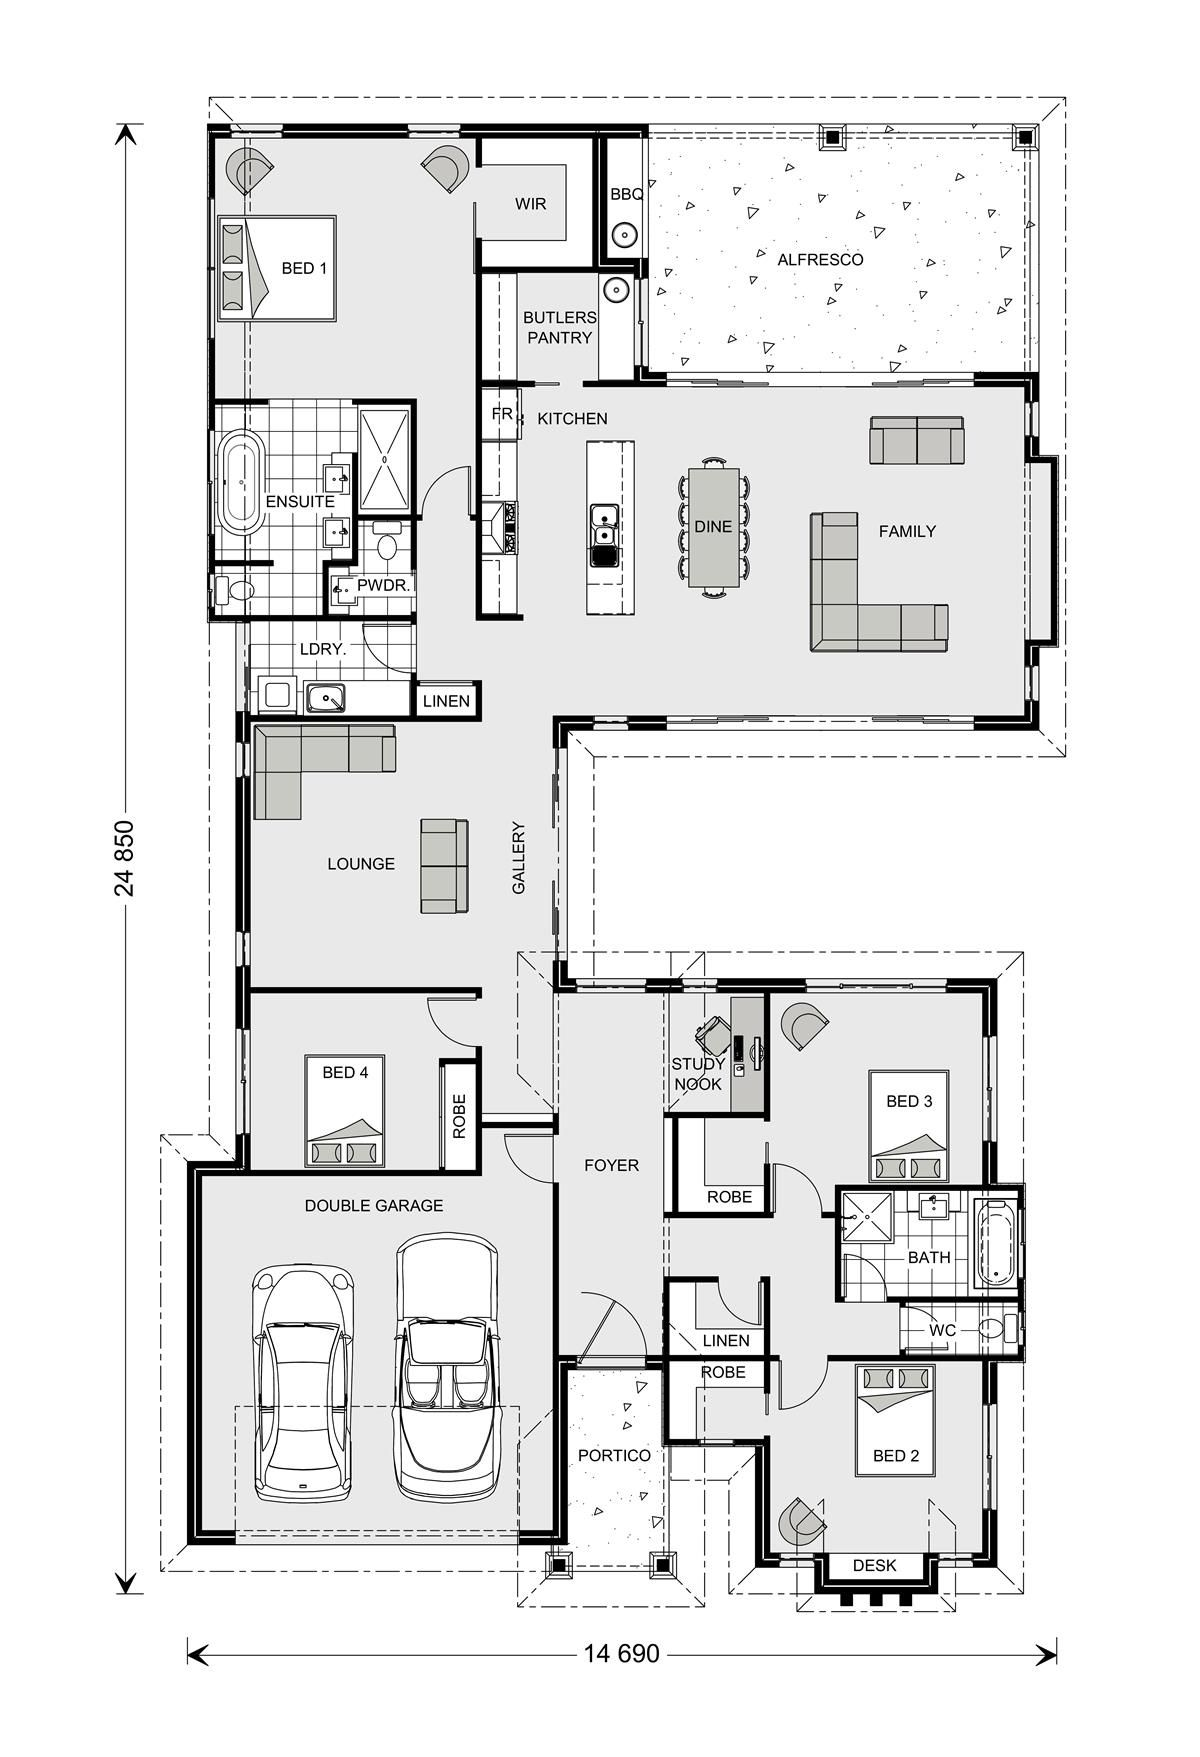 Mandalay 298 Our Designs New South Wales Builder Gj Gardner Homes New South Wales New House Plans Architectural Floor Plans Floor Plans